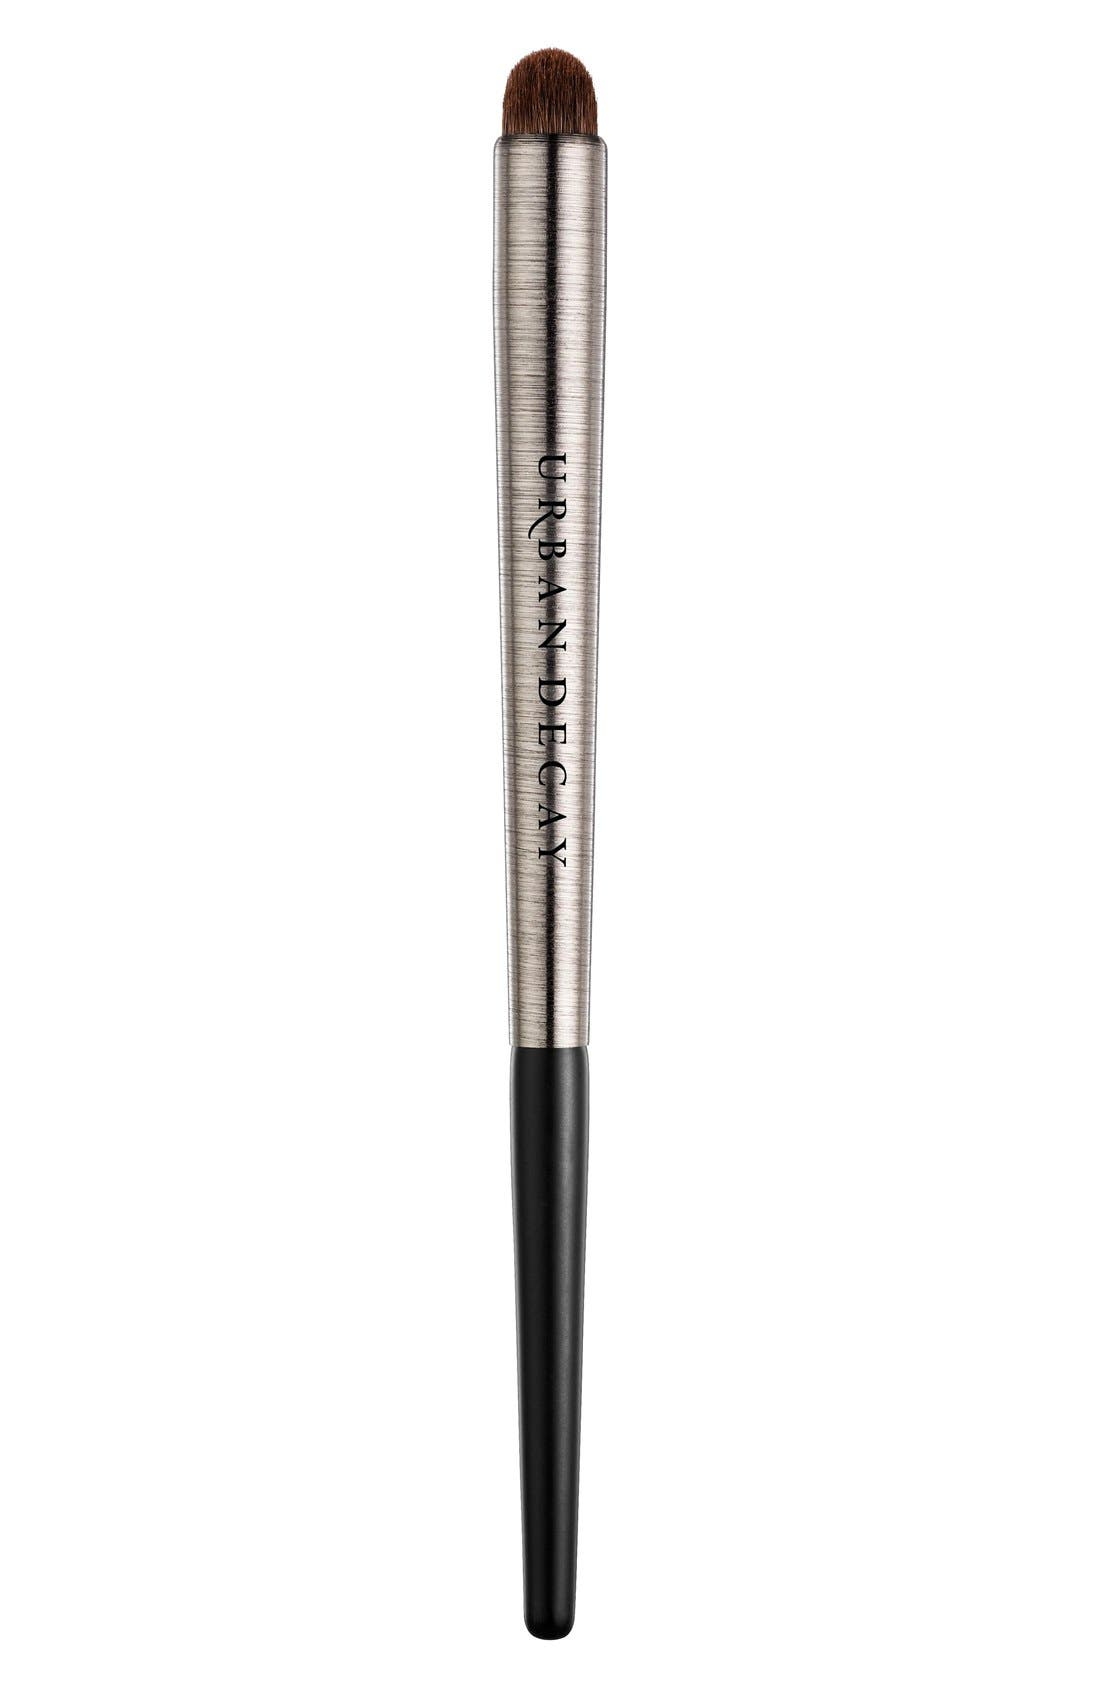 Urban Decay 'Pro' The Finger Brush